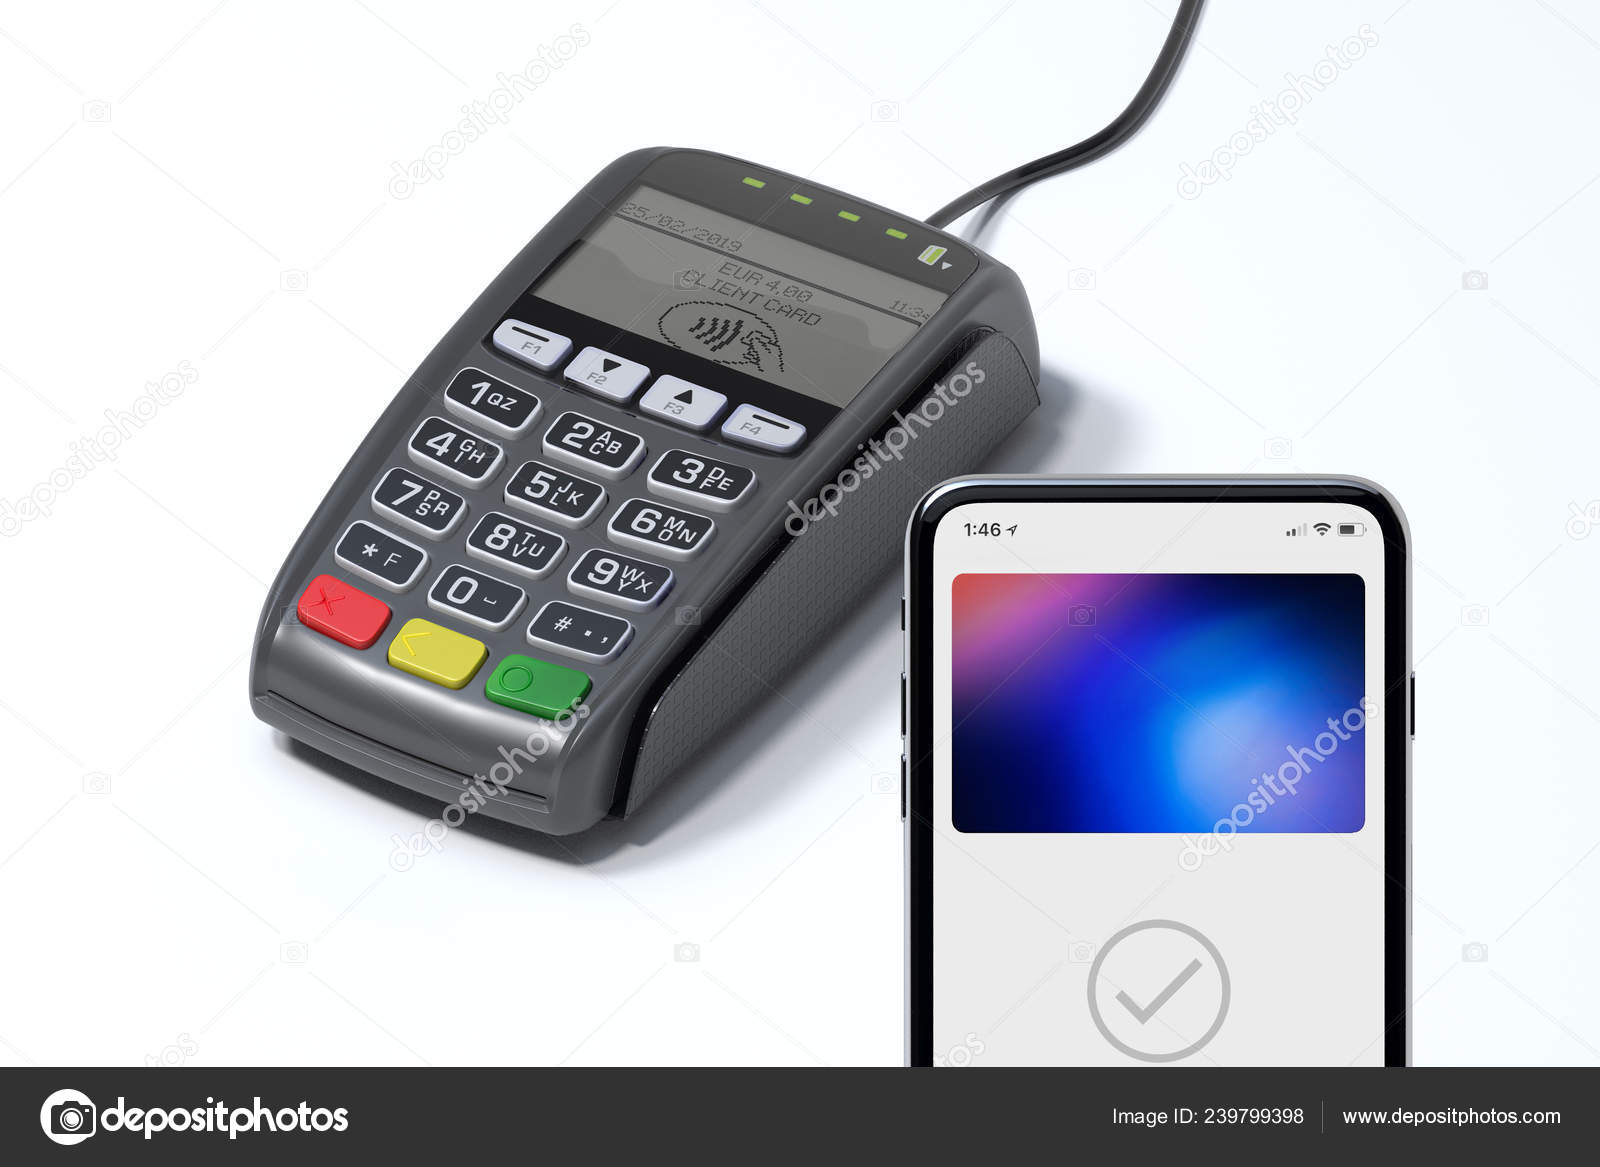 POS payment terminal and mobile phone  NFC payments concept